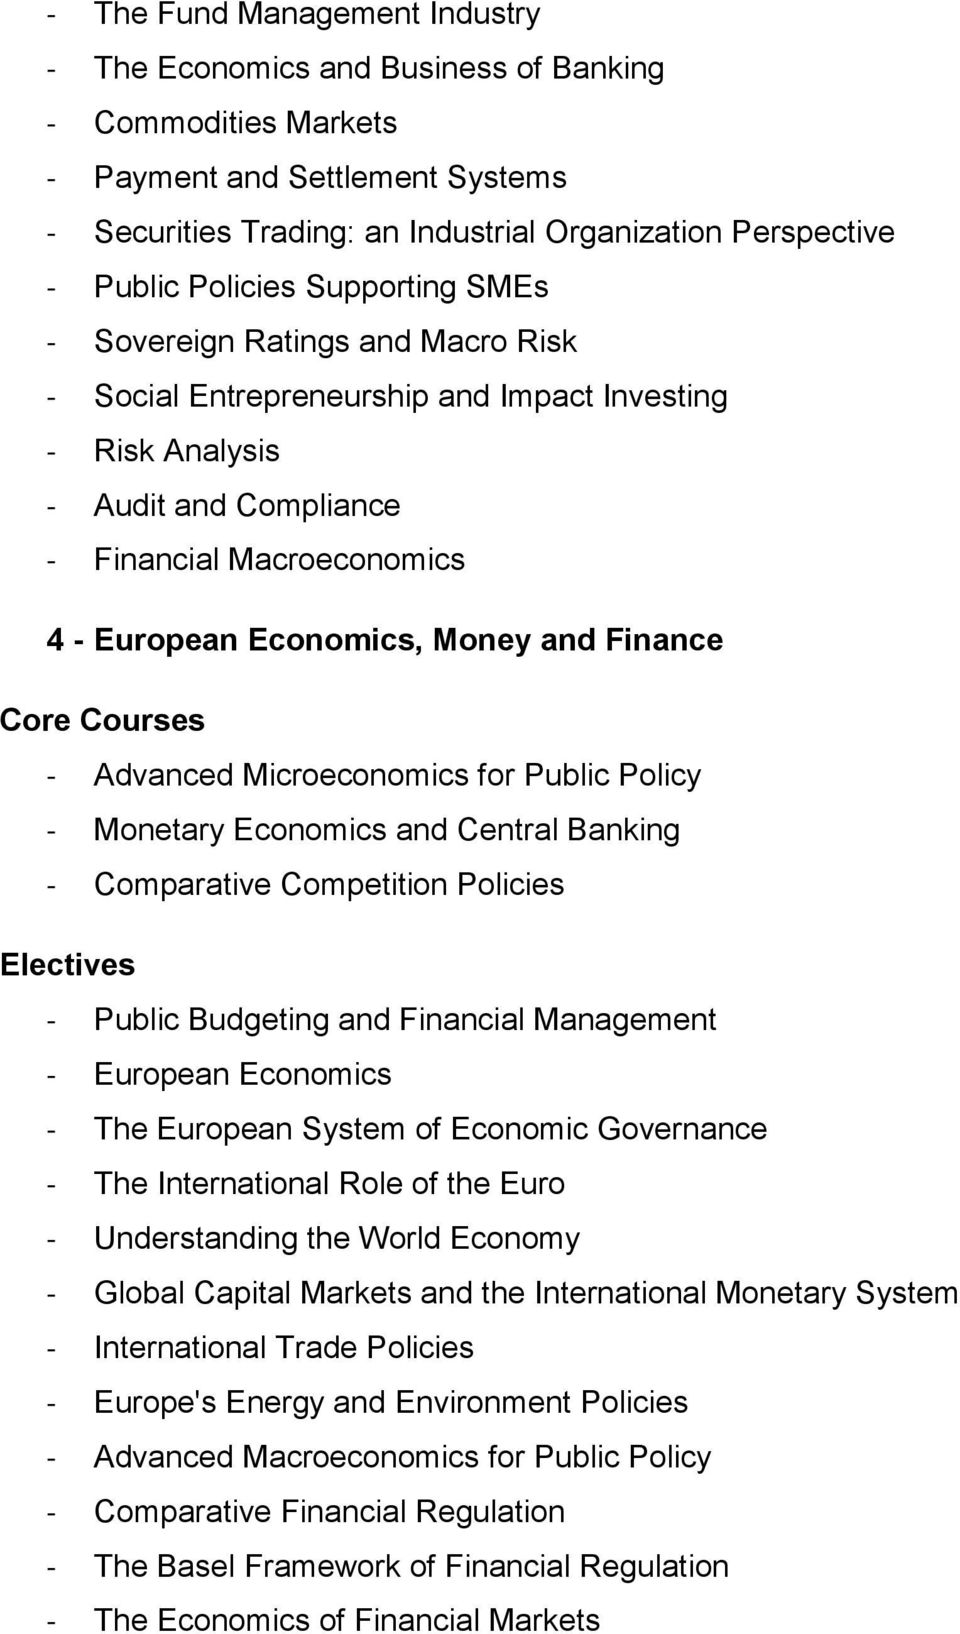 Money and Finance - Advanced Microeconomics for Public Policy - Monetary Economics and Central Banking - Comparative Competition Policies - Public Budgeting and Financial Management - European